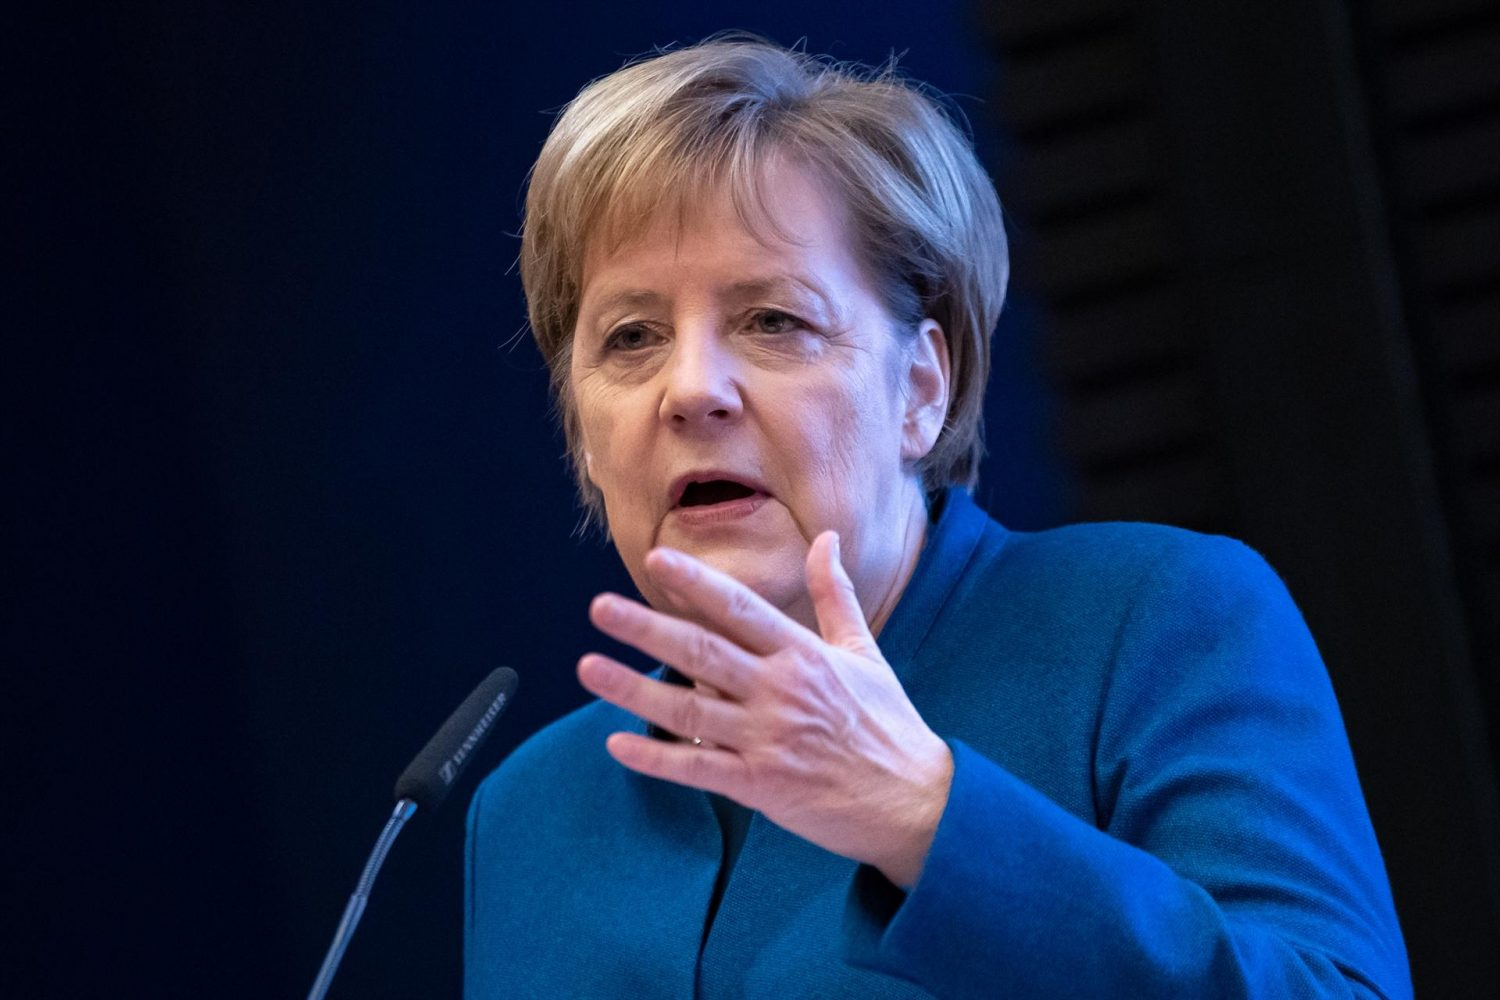 Photo of Merkel warns 'no military solution' to Ukraine conflict